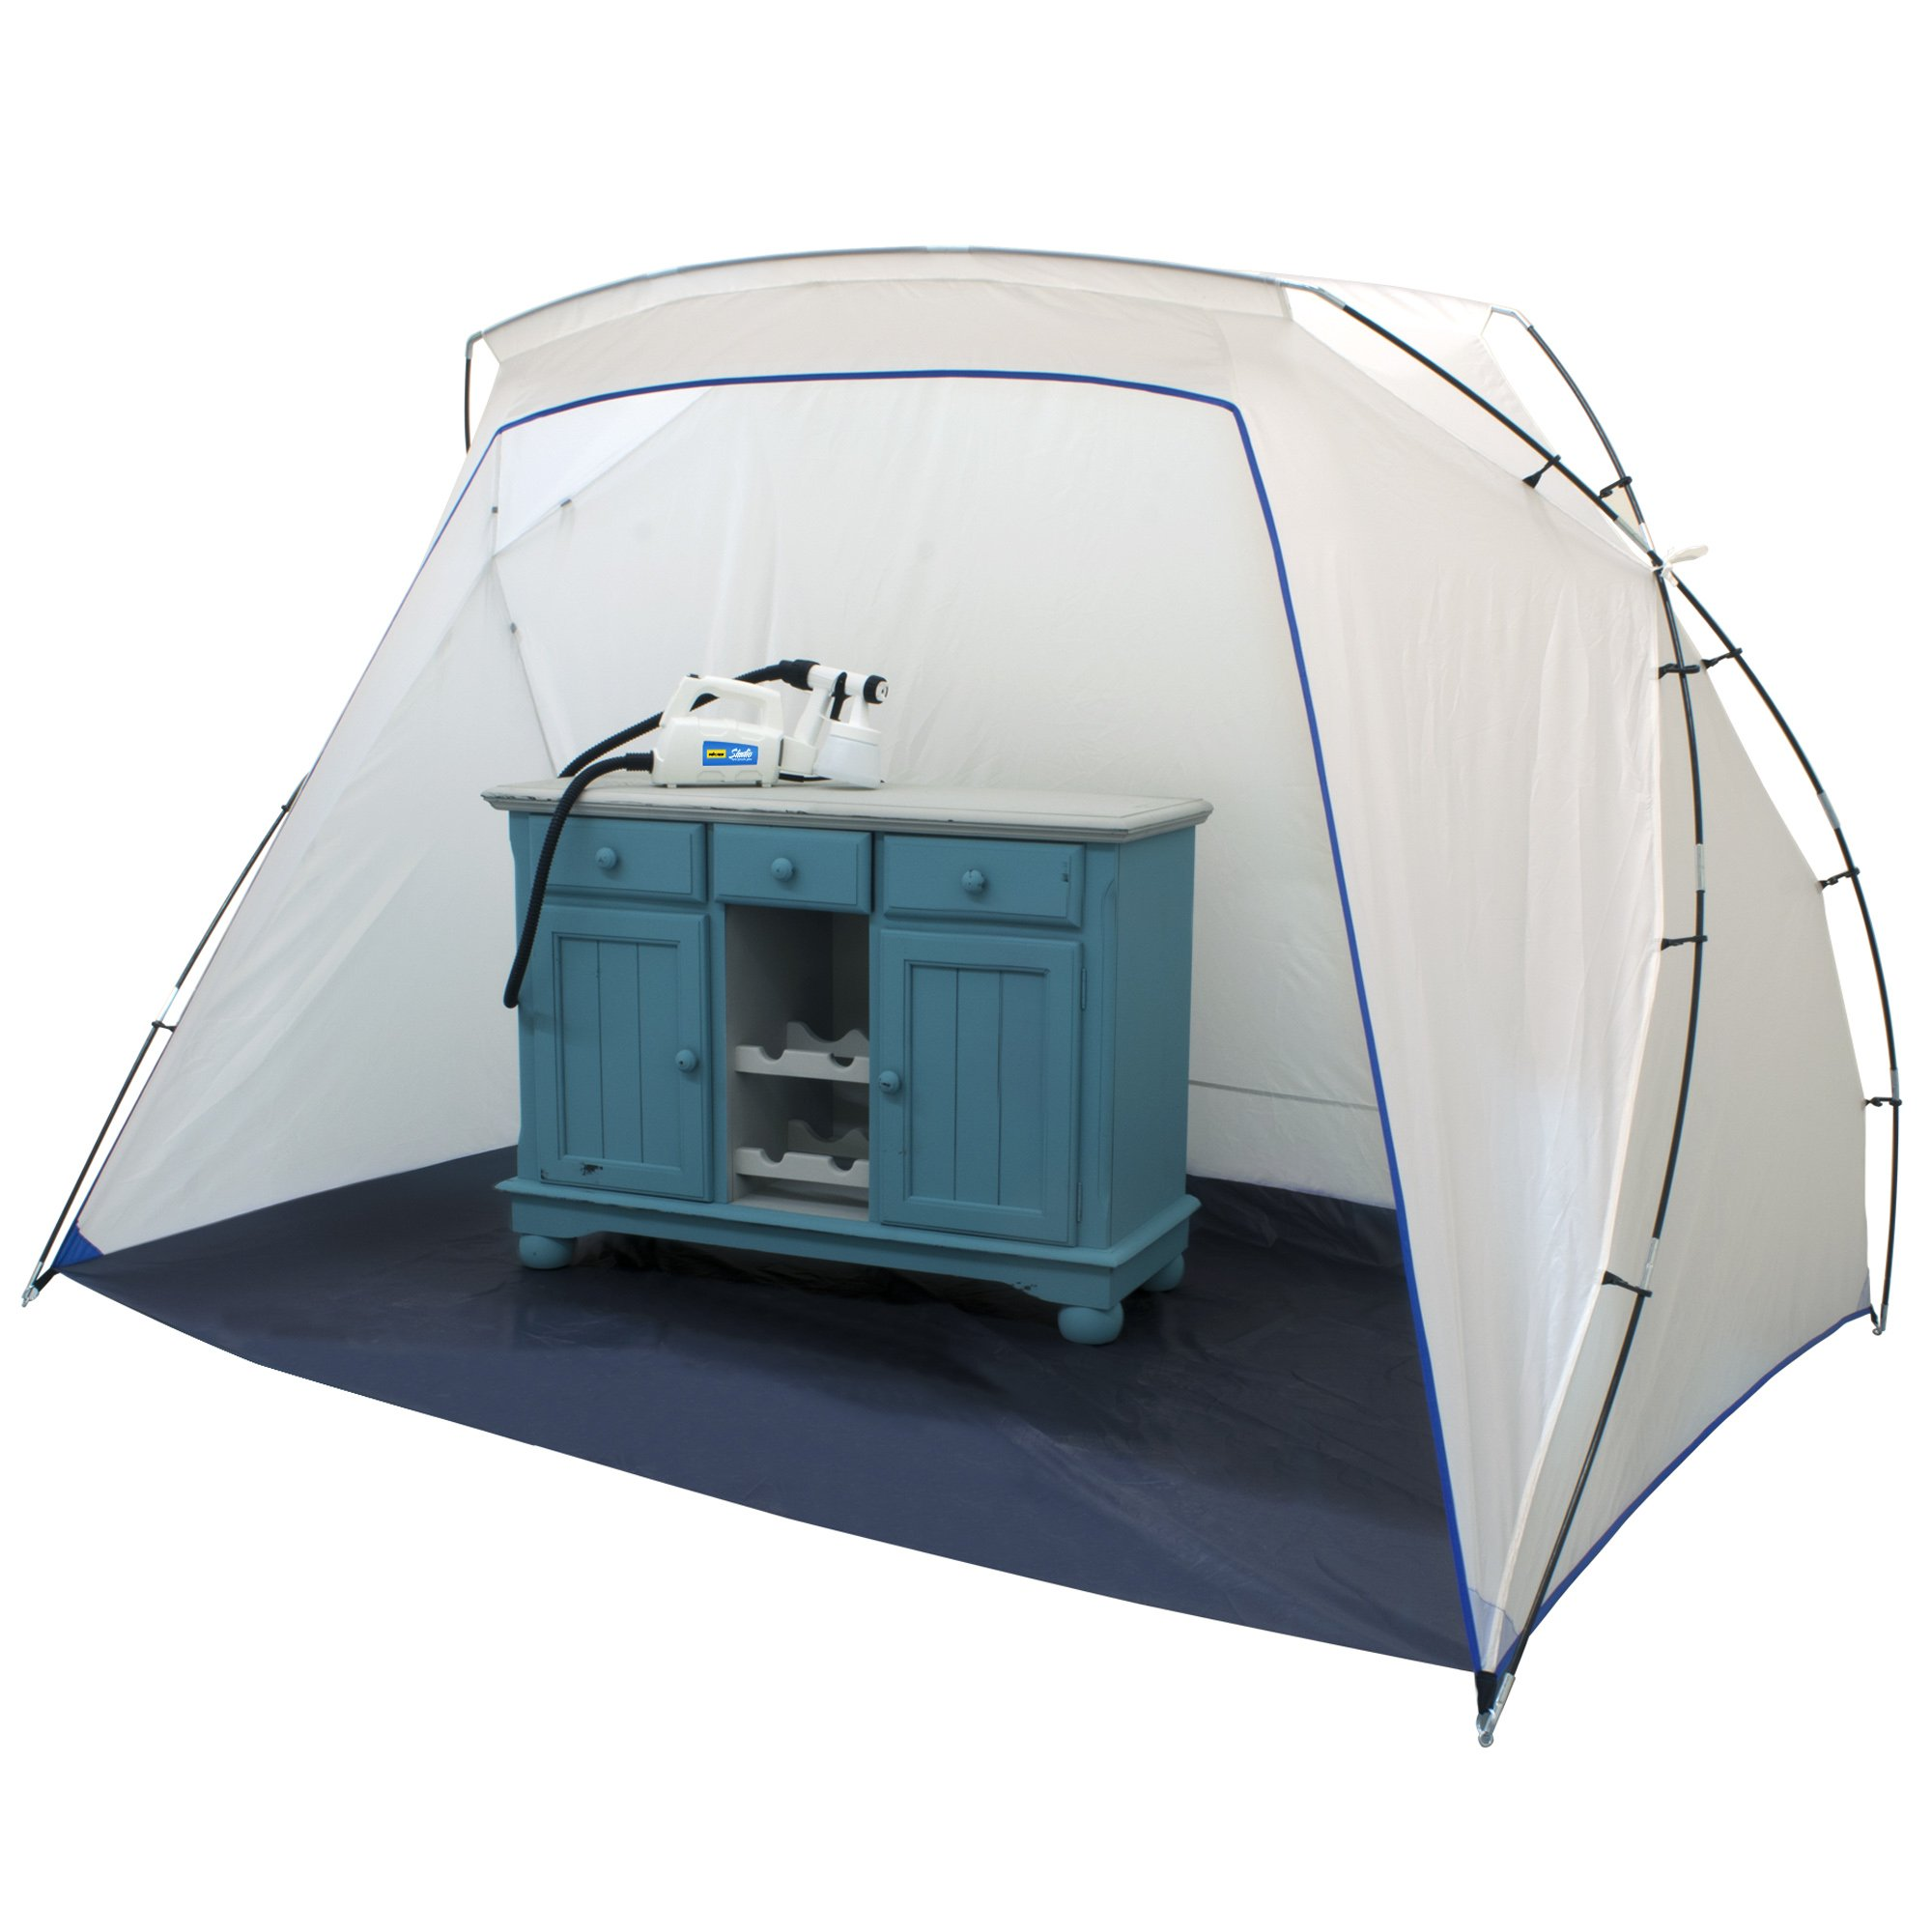 Wagner 0529055 Studio Spray Tent with Built-In Floor